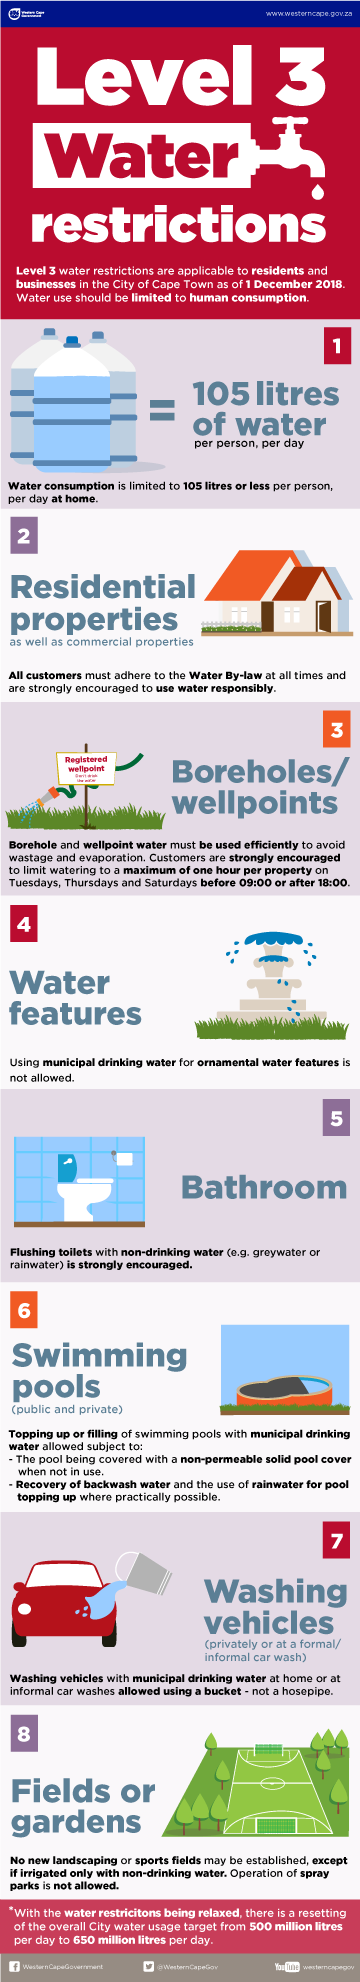 Level 3 water restrictions info graphic